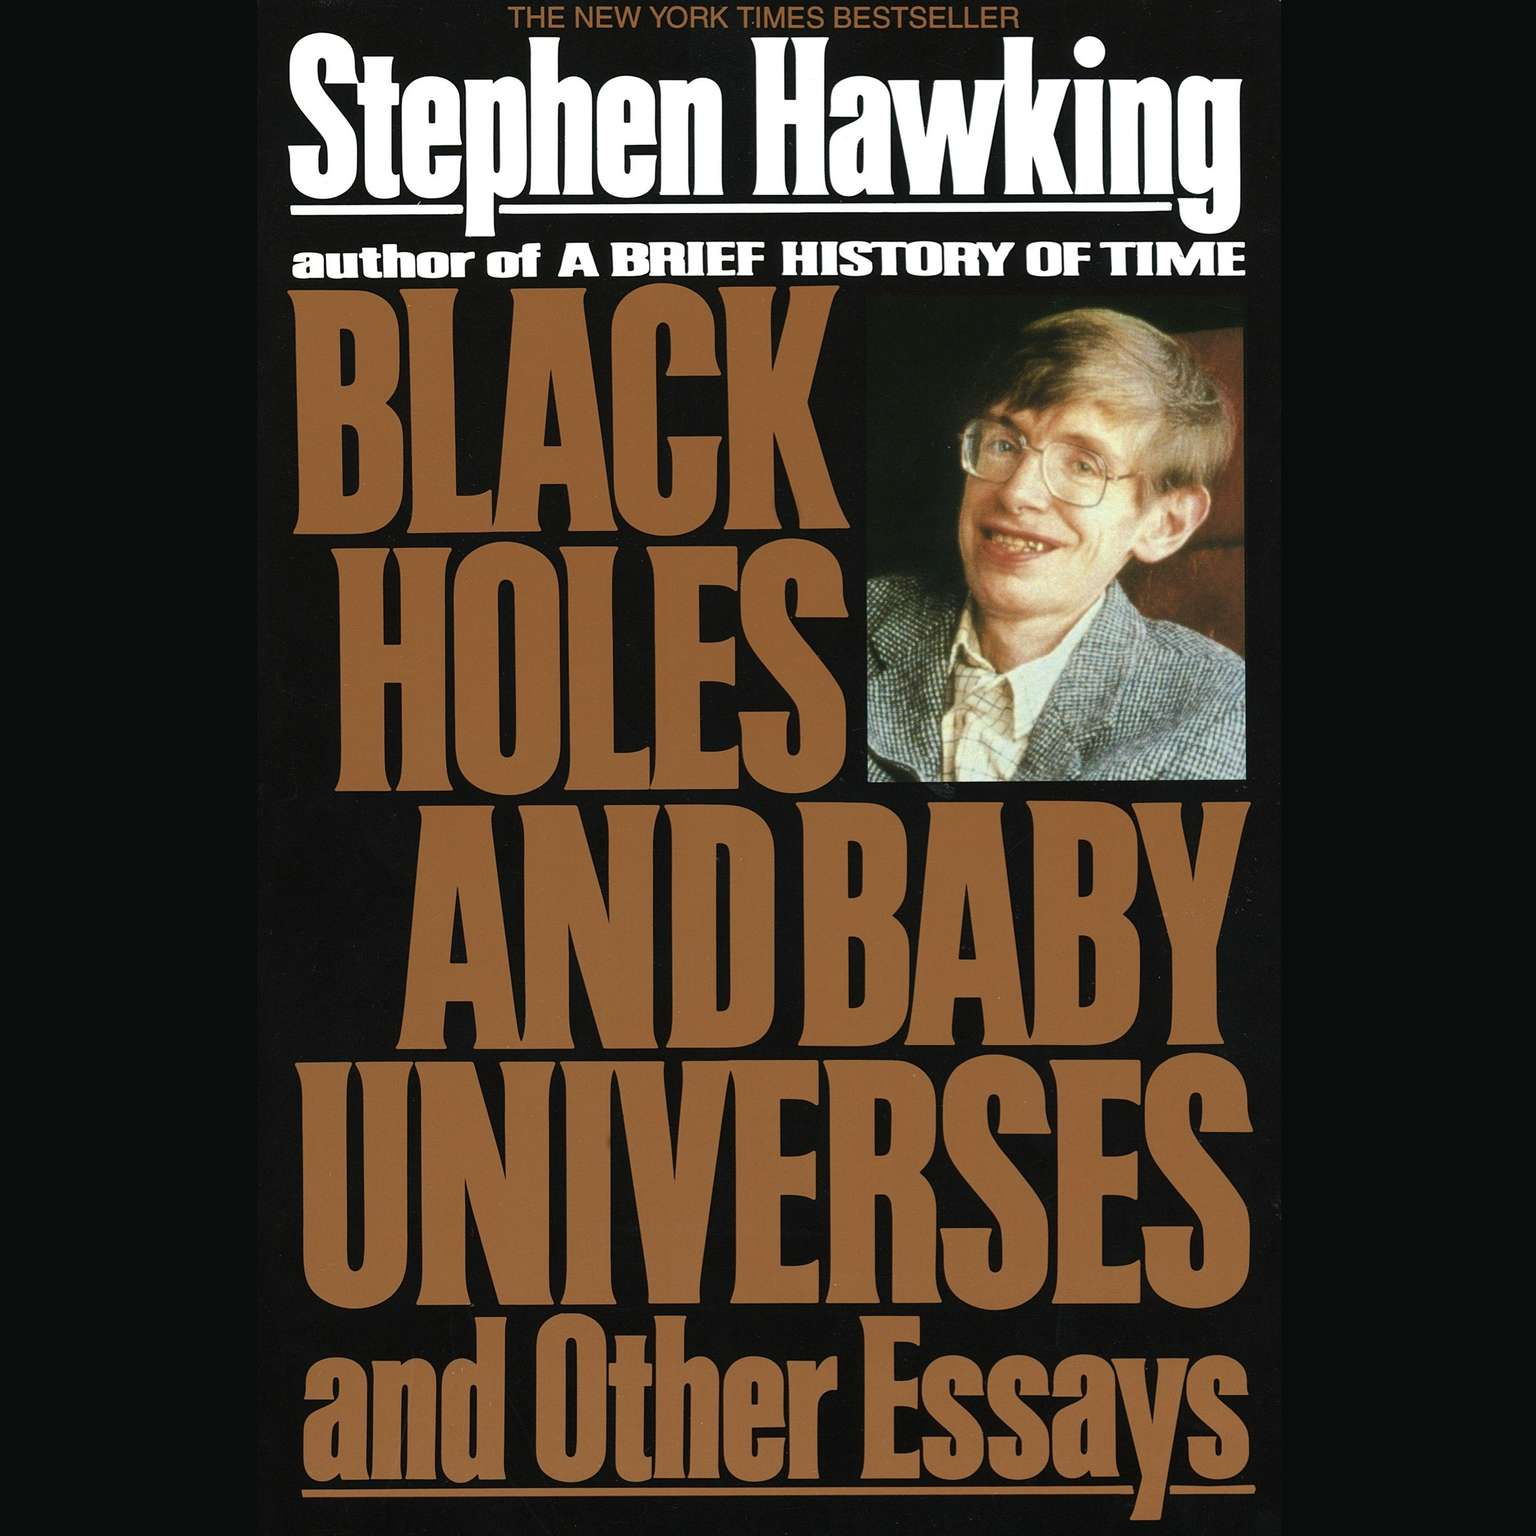 005 Essay Example Black Holes And Baby Universes Other Essays Atqf Square Unique Review Ebook Free Download Amazon Full